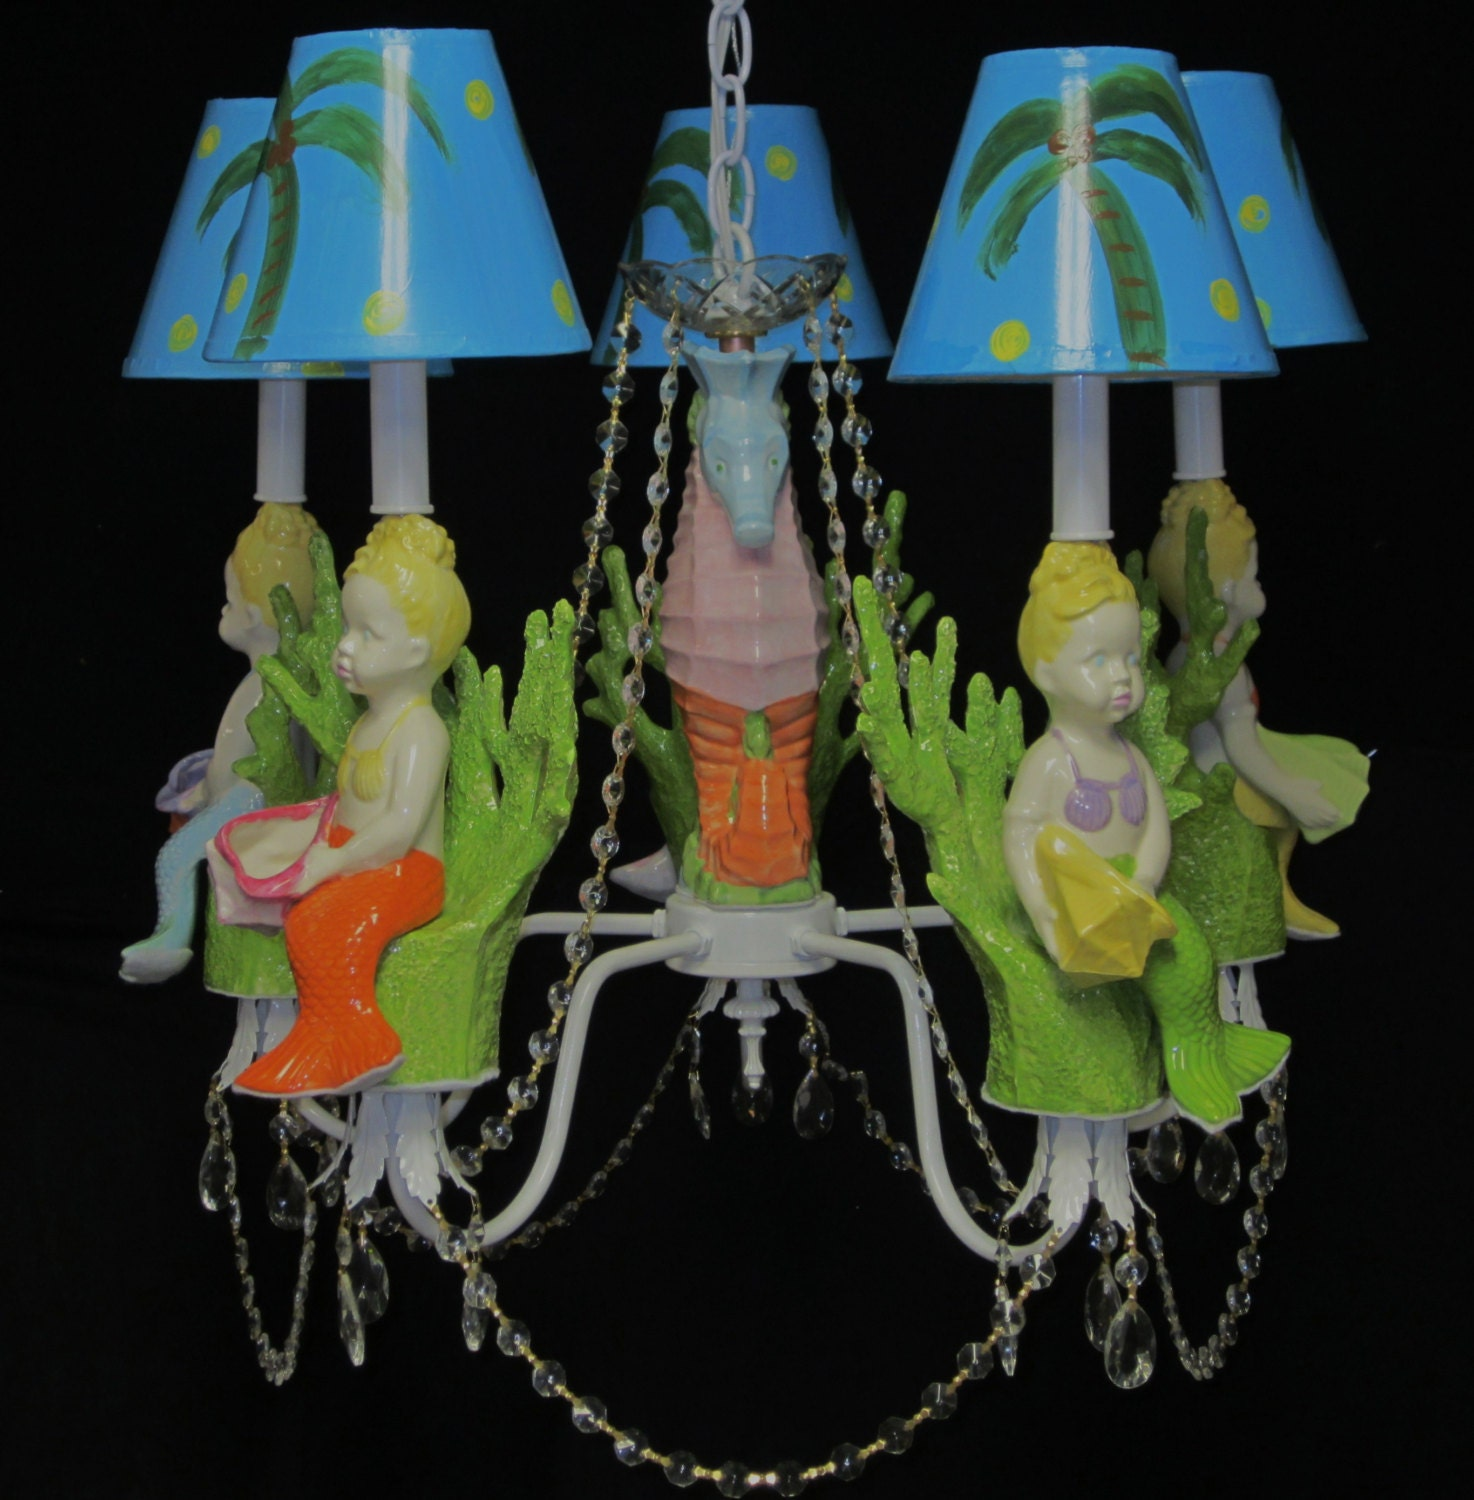 Mermaid Chandelier Girls Room Chandelier kids Room Lighting